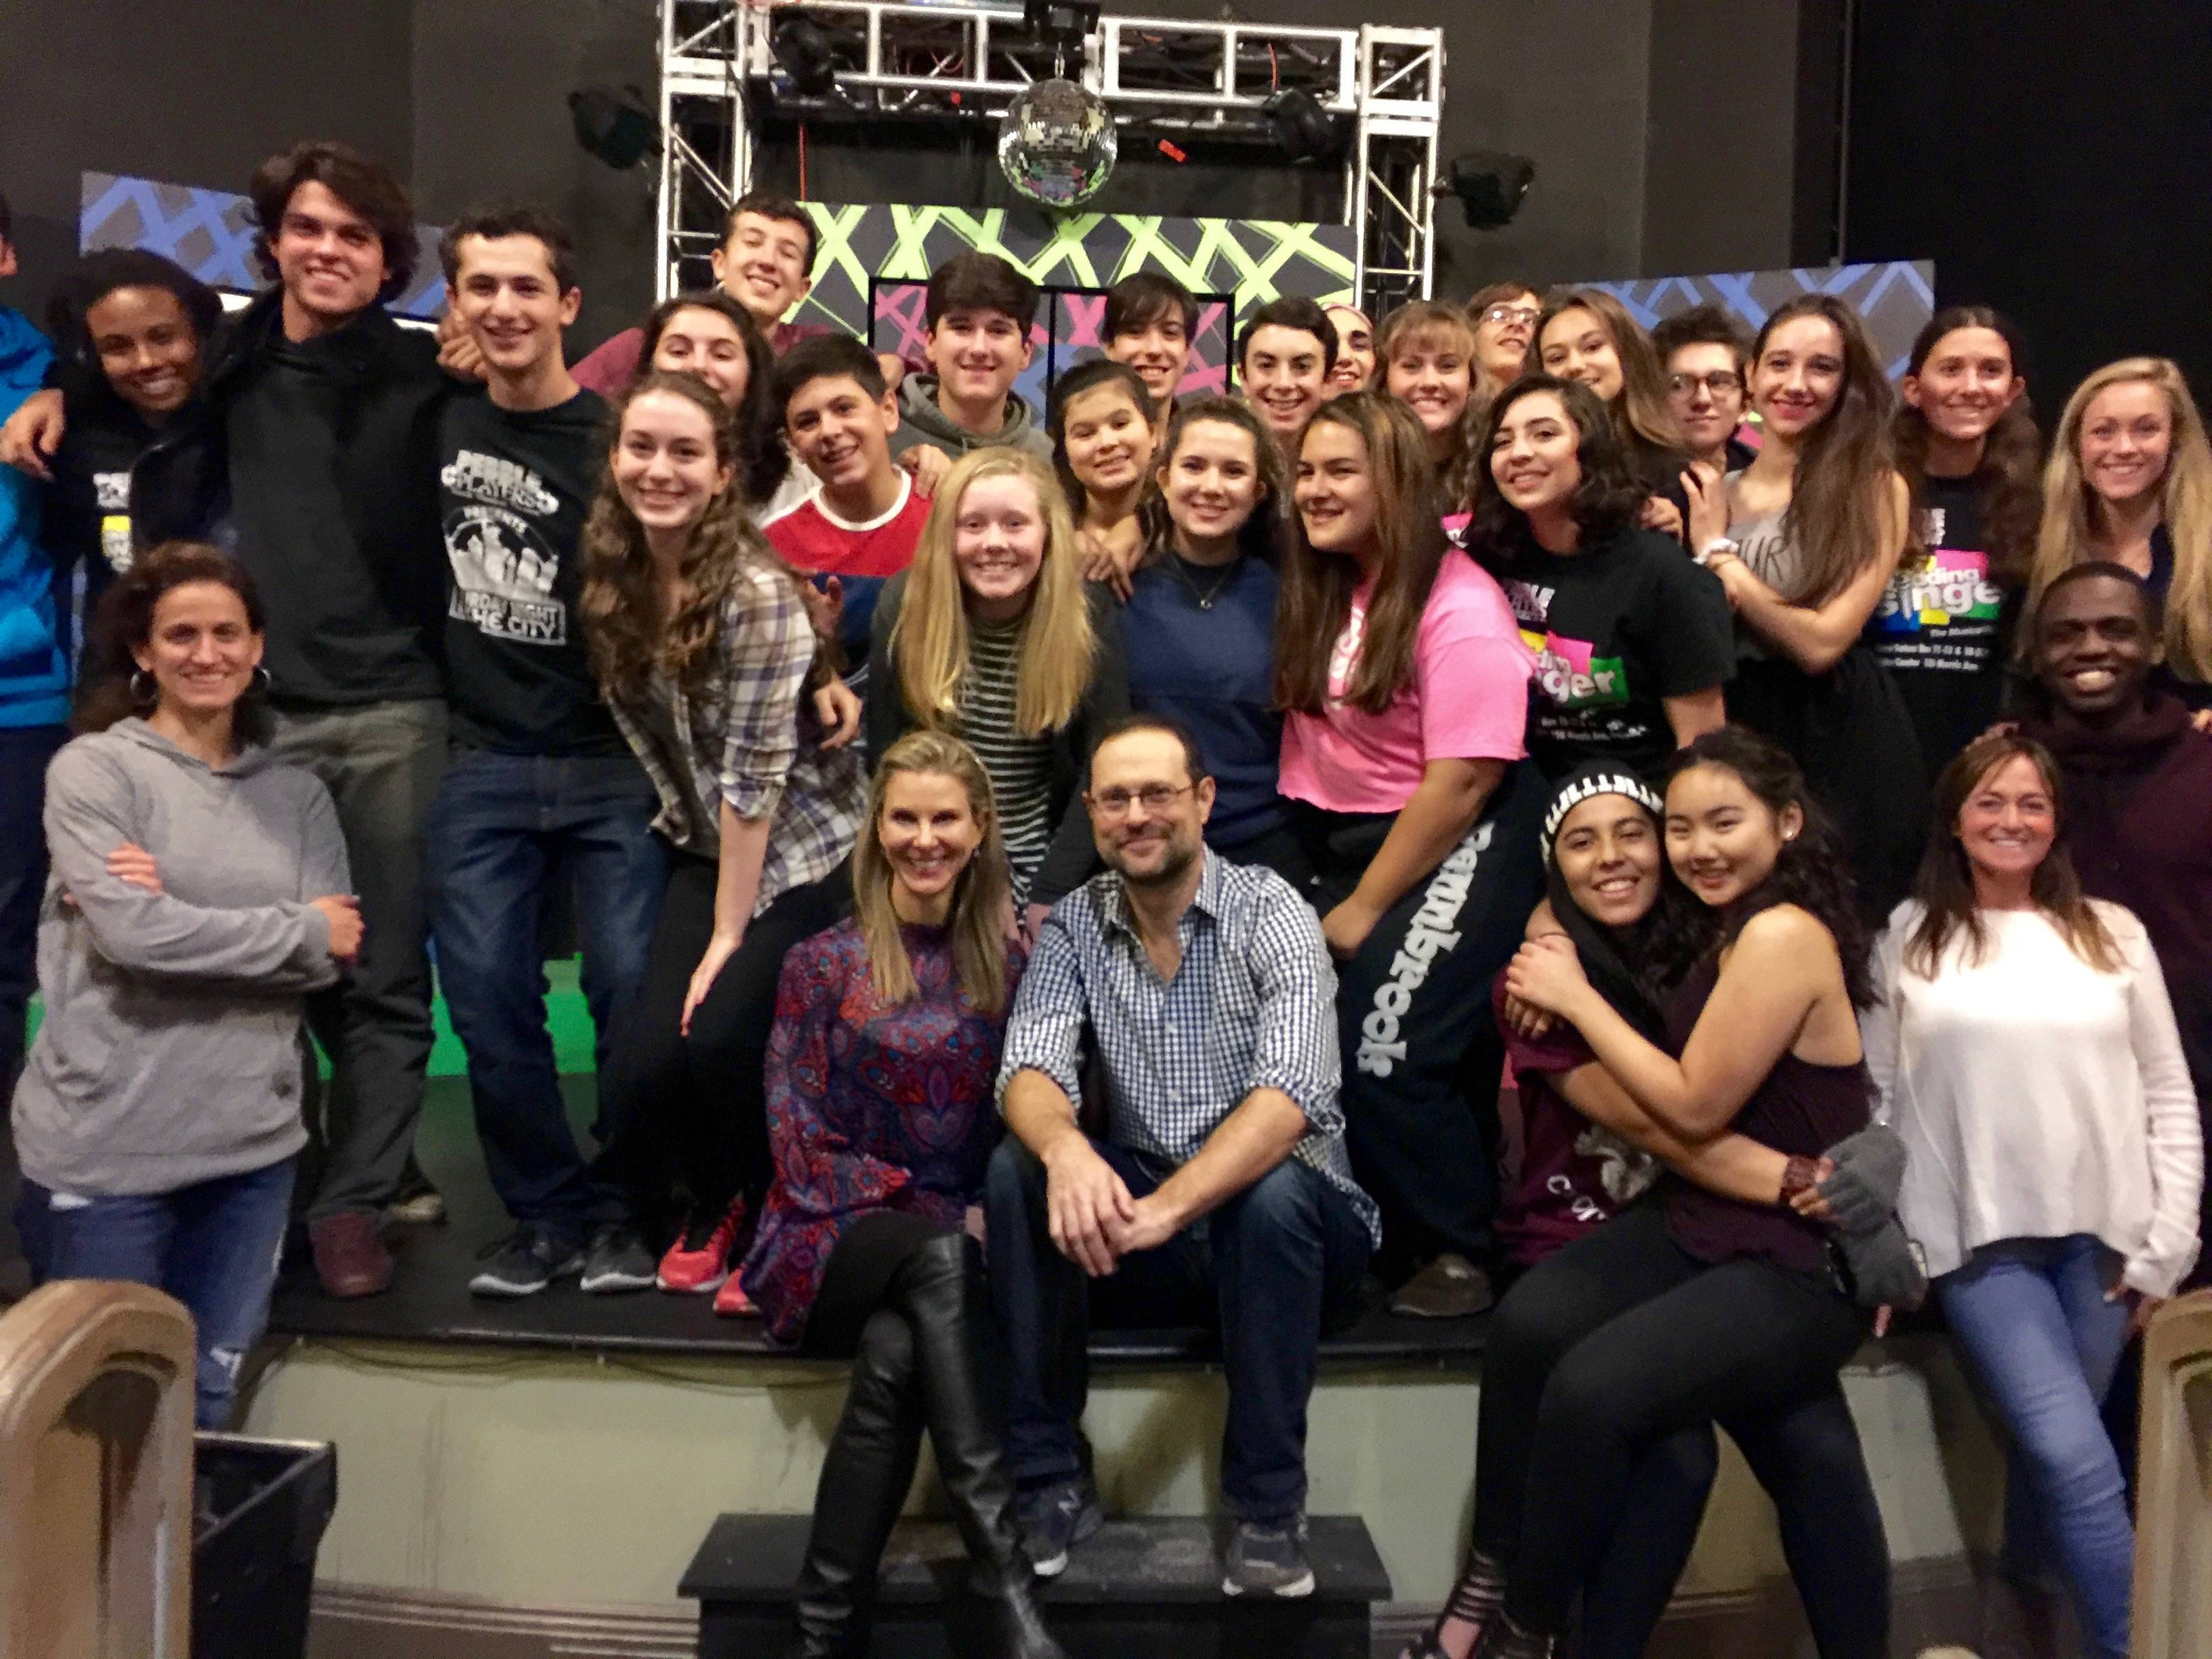 Marisa Sechrest And Matthew Sklar Center Among The Teen Cast Of Wedding Singer Credits Photo Courtesy Pebble Players